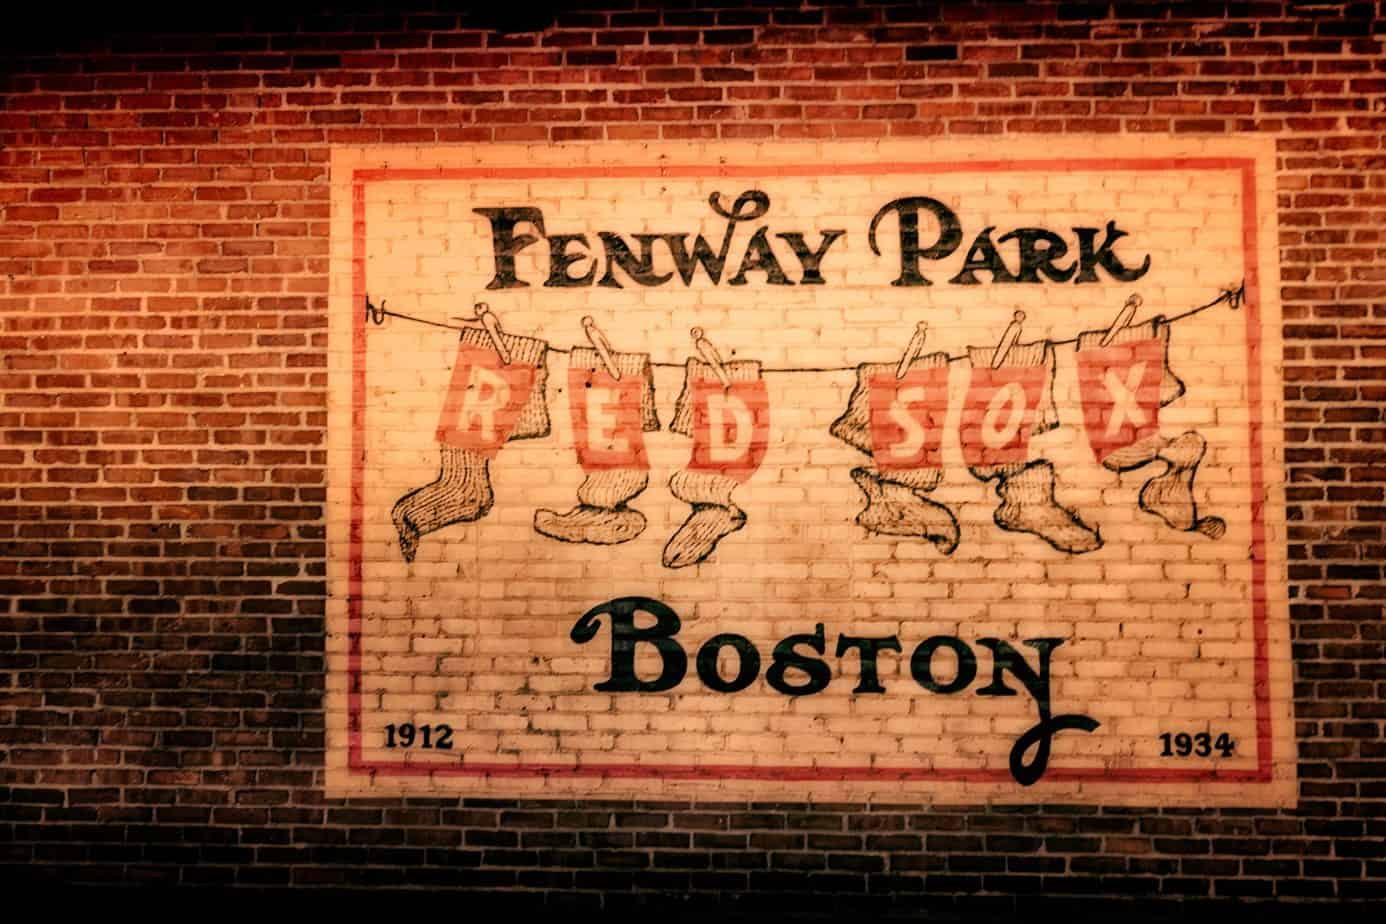 Brick Mural at Fenway Park